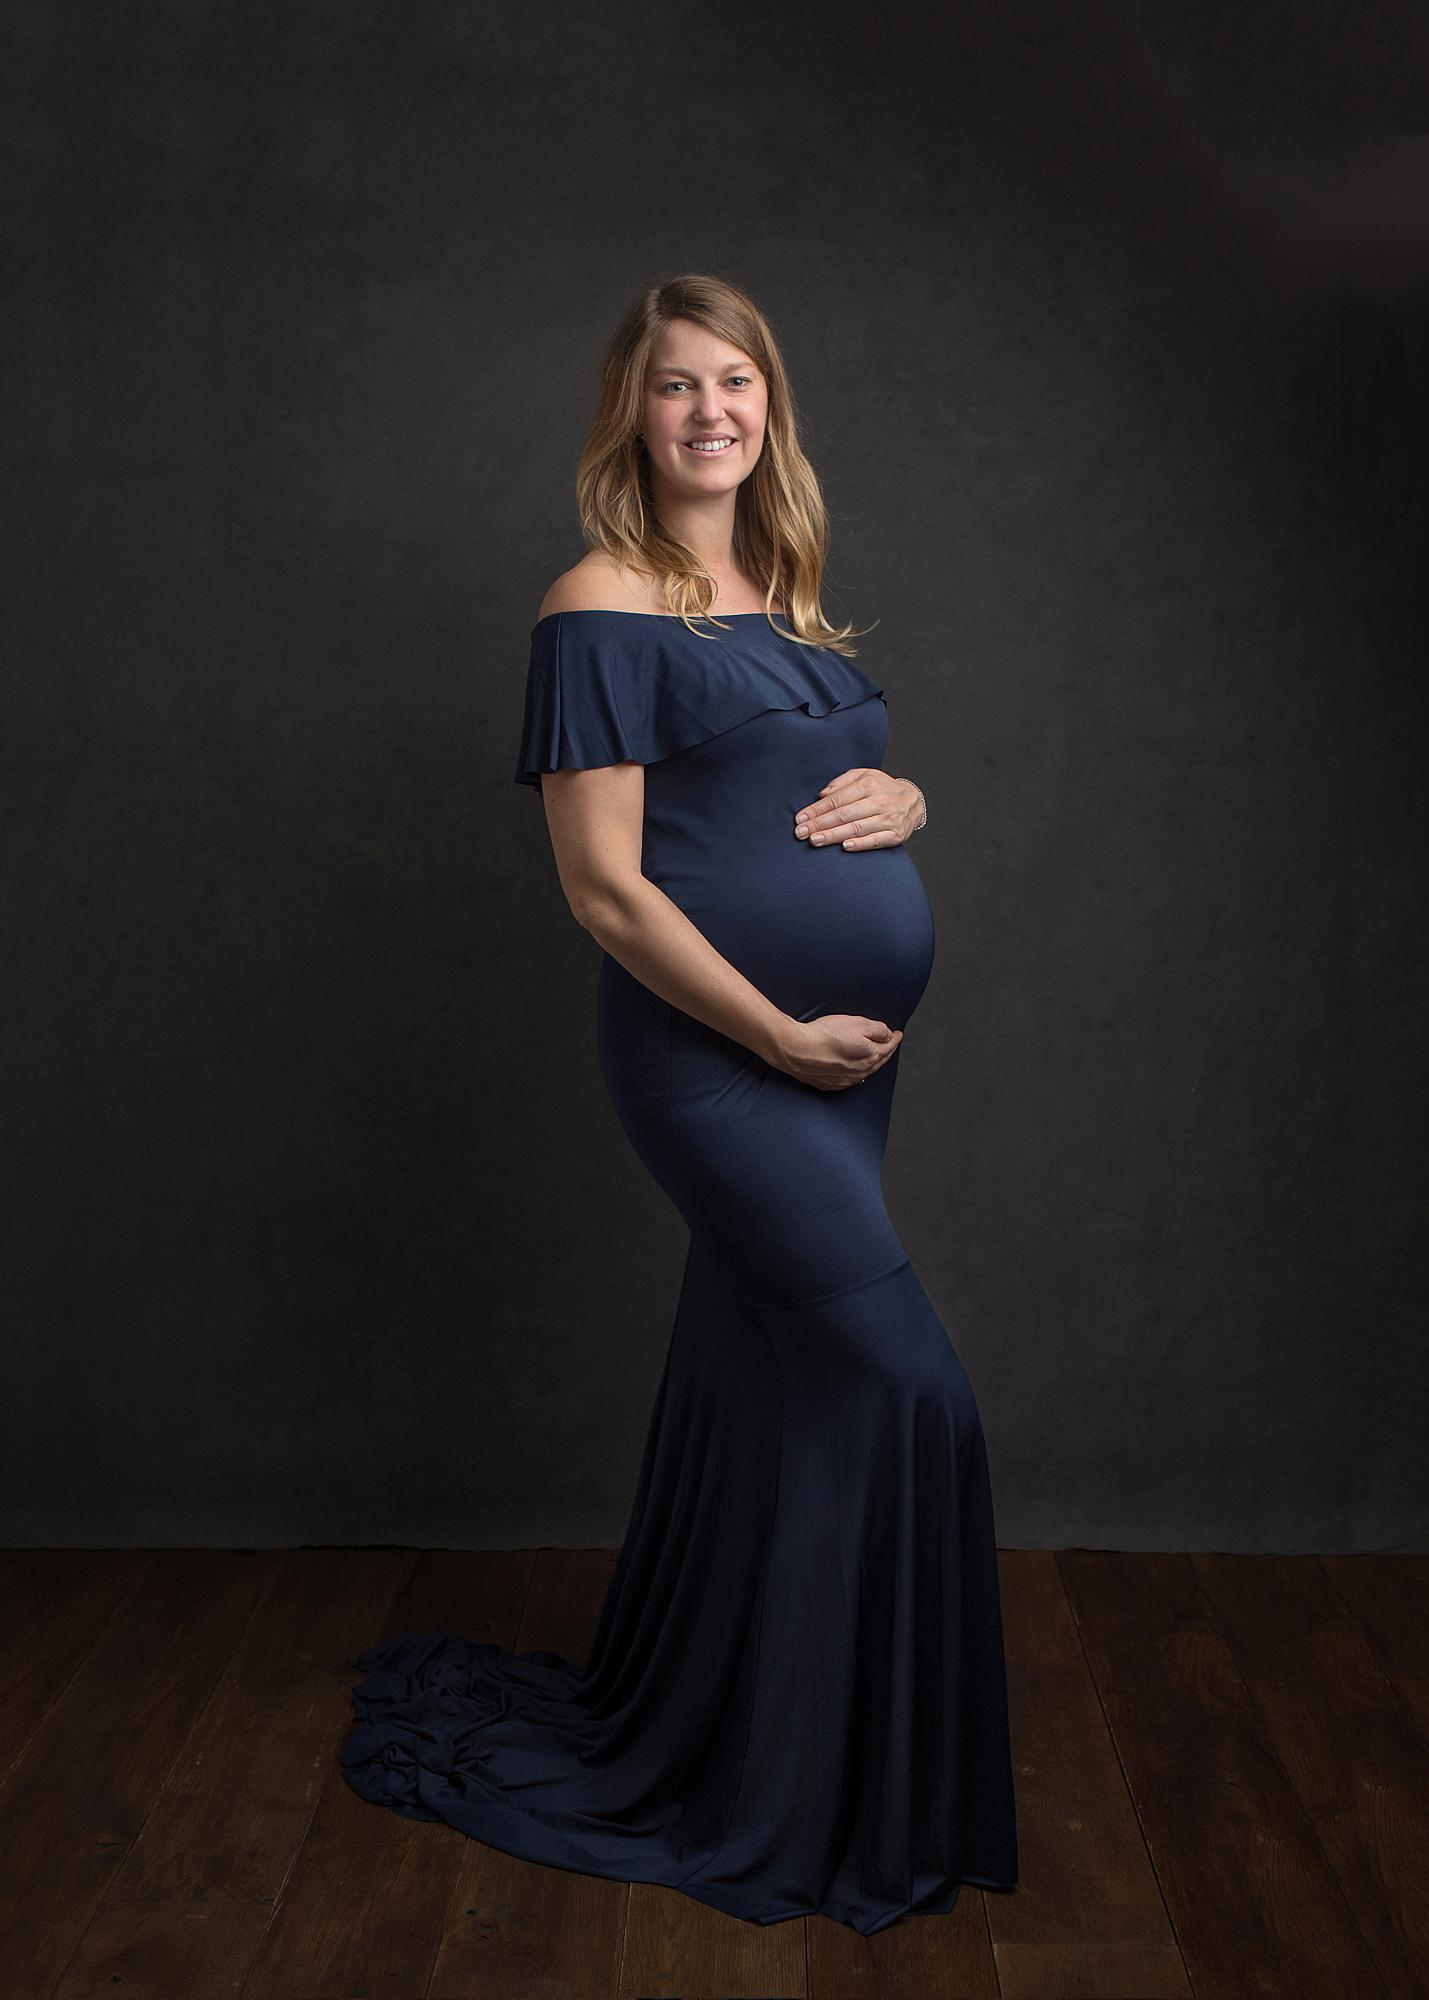 Pregnant woman posing in a navy dress for a maternity photoshoot in Alison McKenny's Suffolk studio